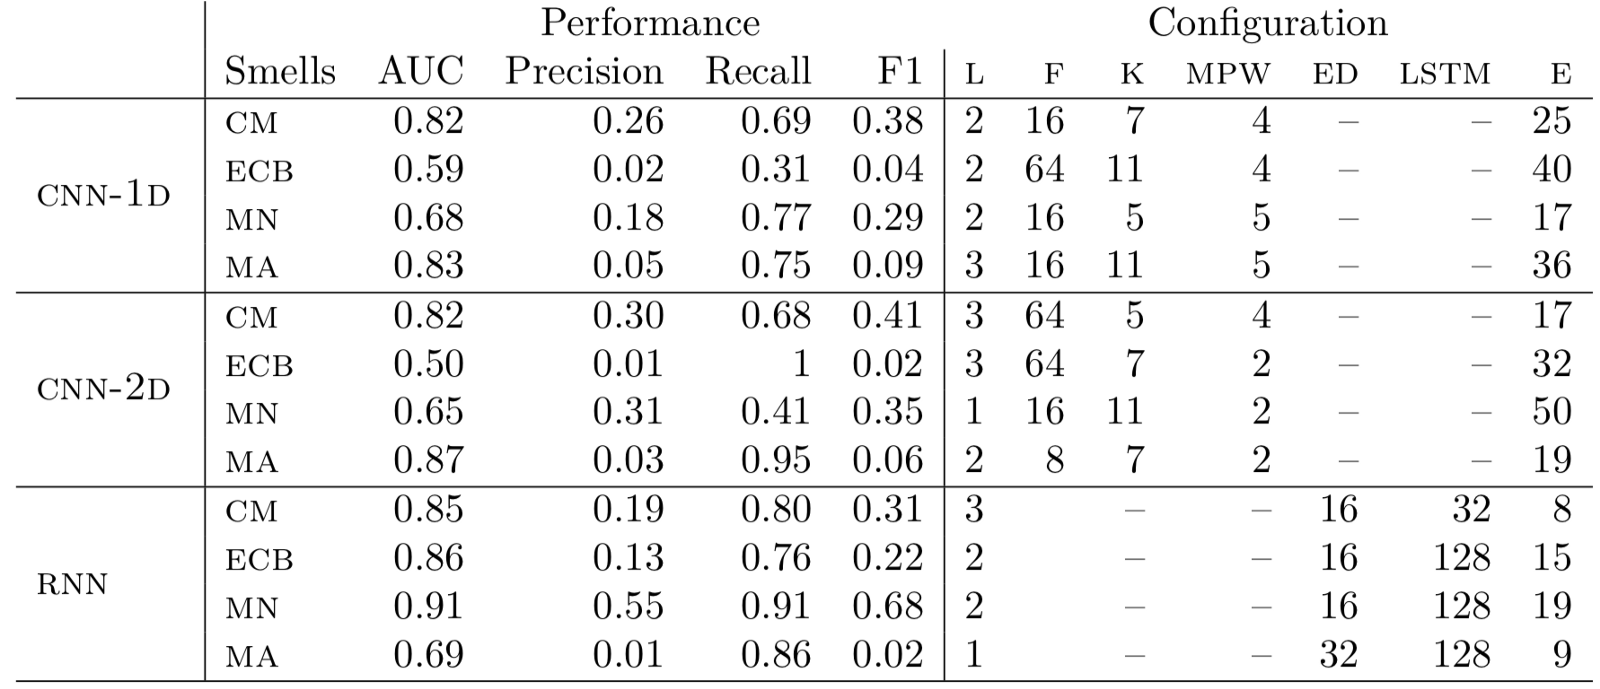 Performance of all three models with configuration corresponding to the optimal performance. L refers to deep learning layers, F refers to number of filters, K refers to kernel size, MPW refers to maximum pooling window size, ED refers to embedding dimension, LSTM refers to number of LSTM units, and E refers to number of epochs.